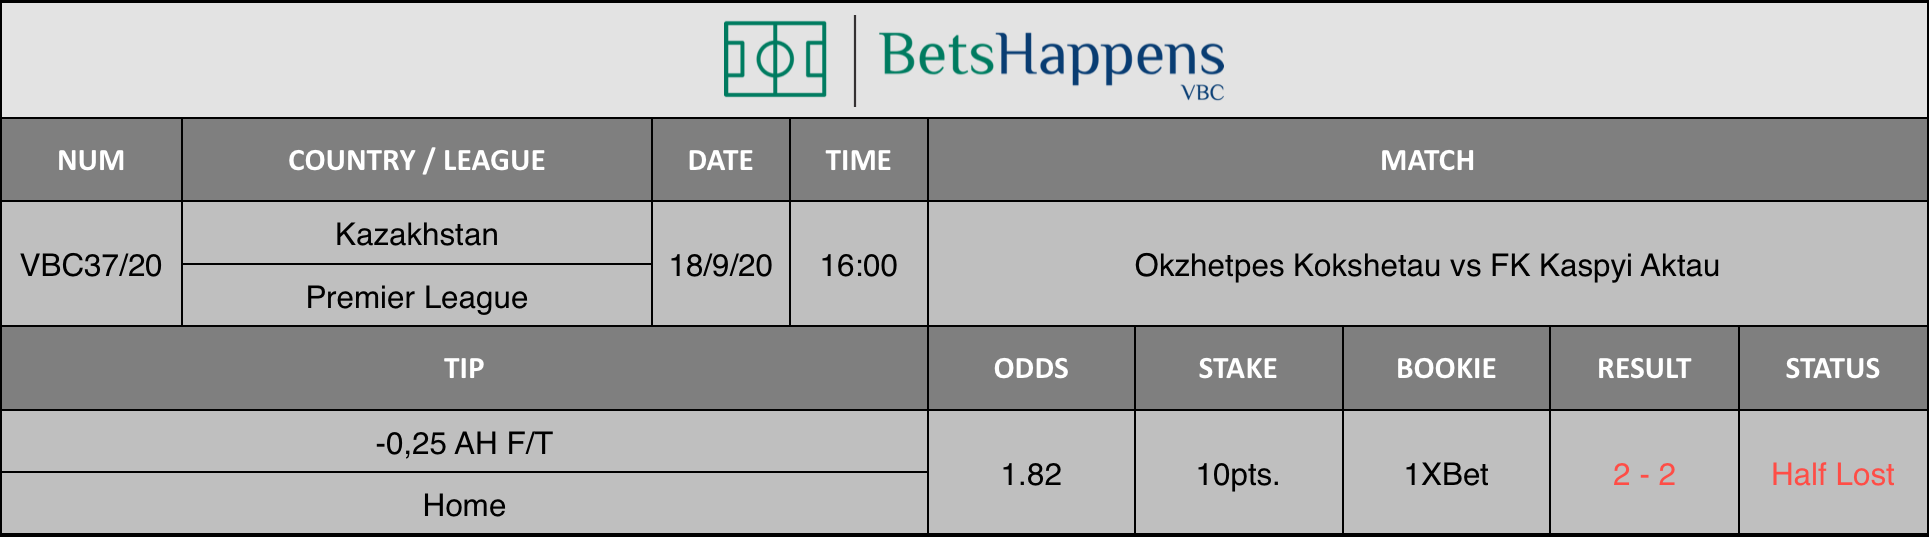 Results of our advice for the Okzhetpes Kokshetau vs FK Kospyi Aktau match in which -0.25 AH F / T Home is recommended.